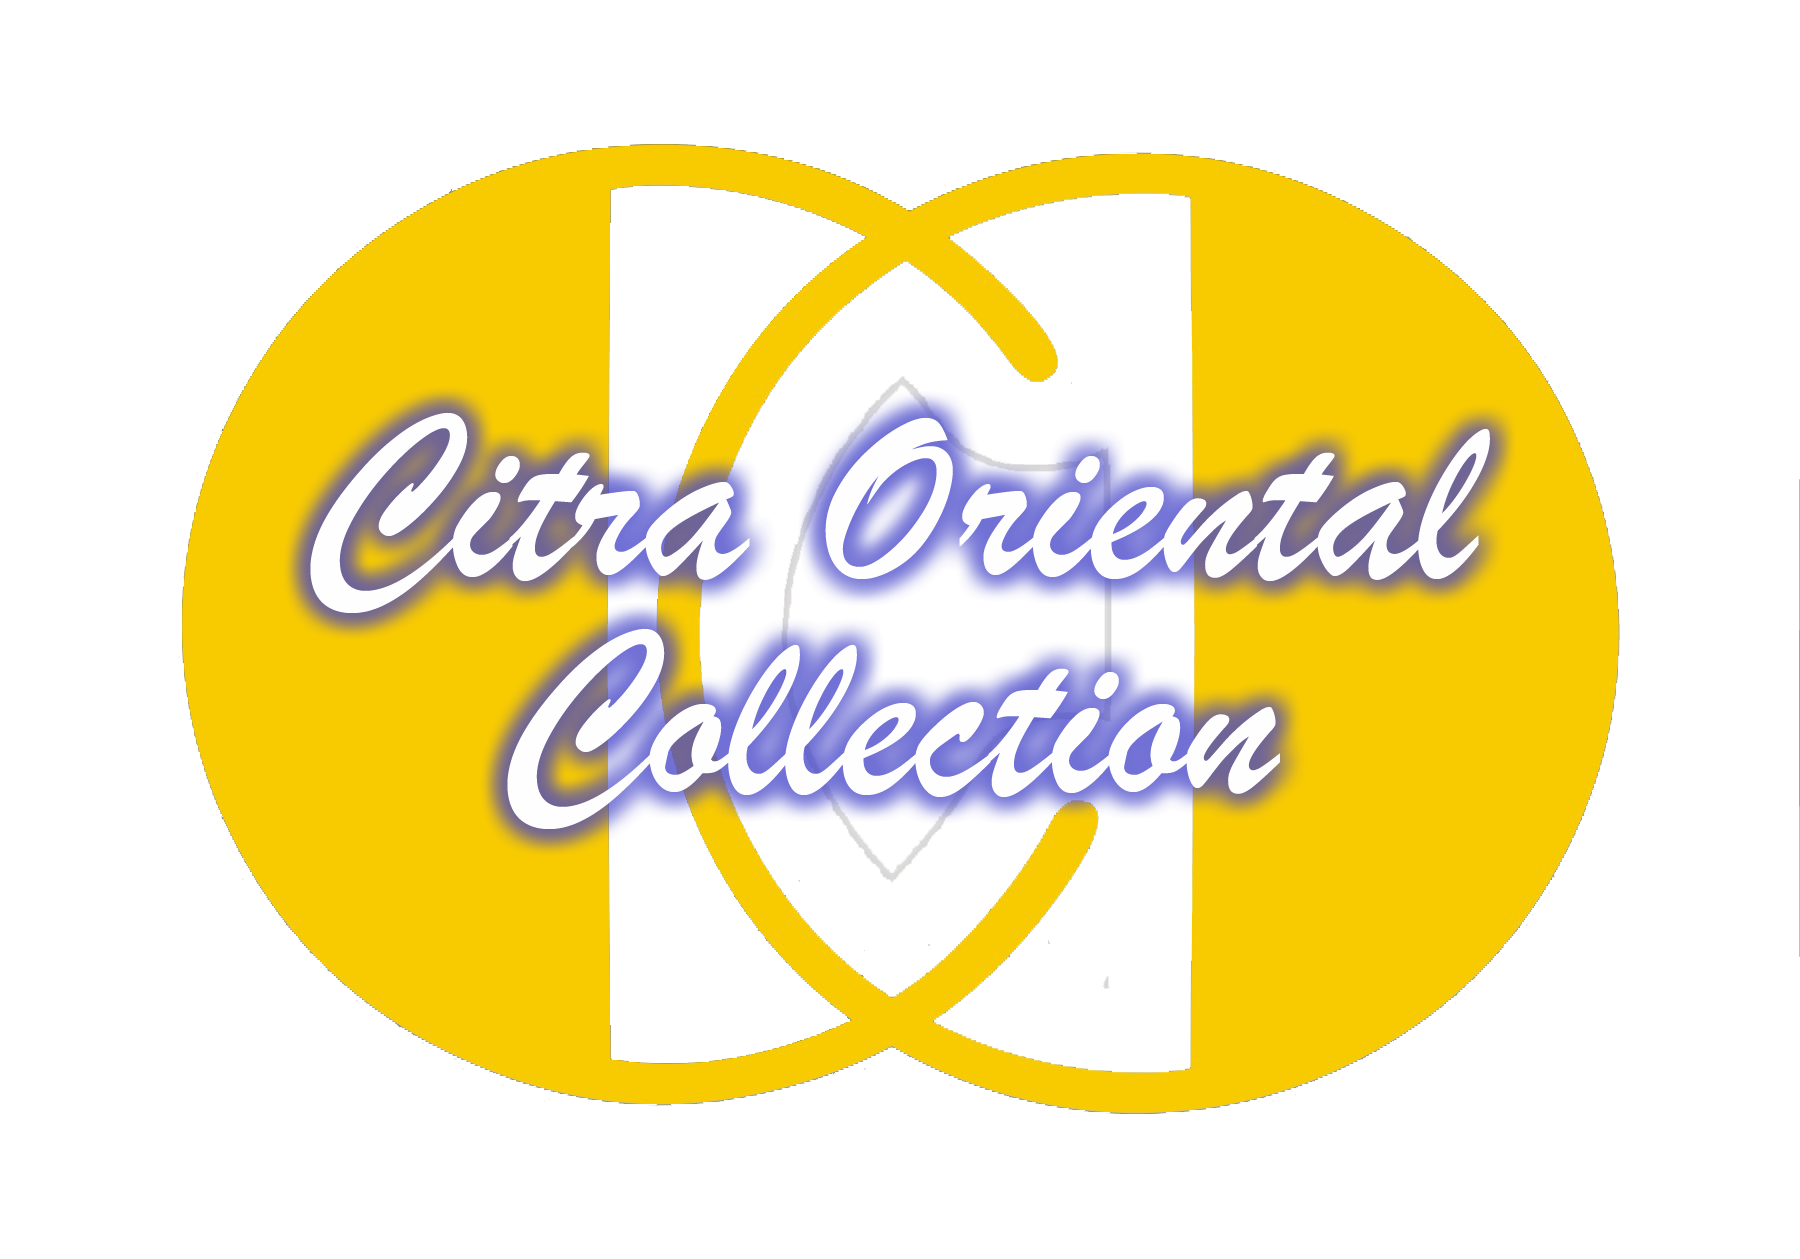 Co collection logo